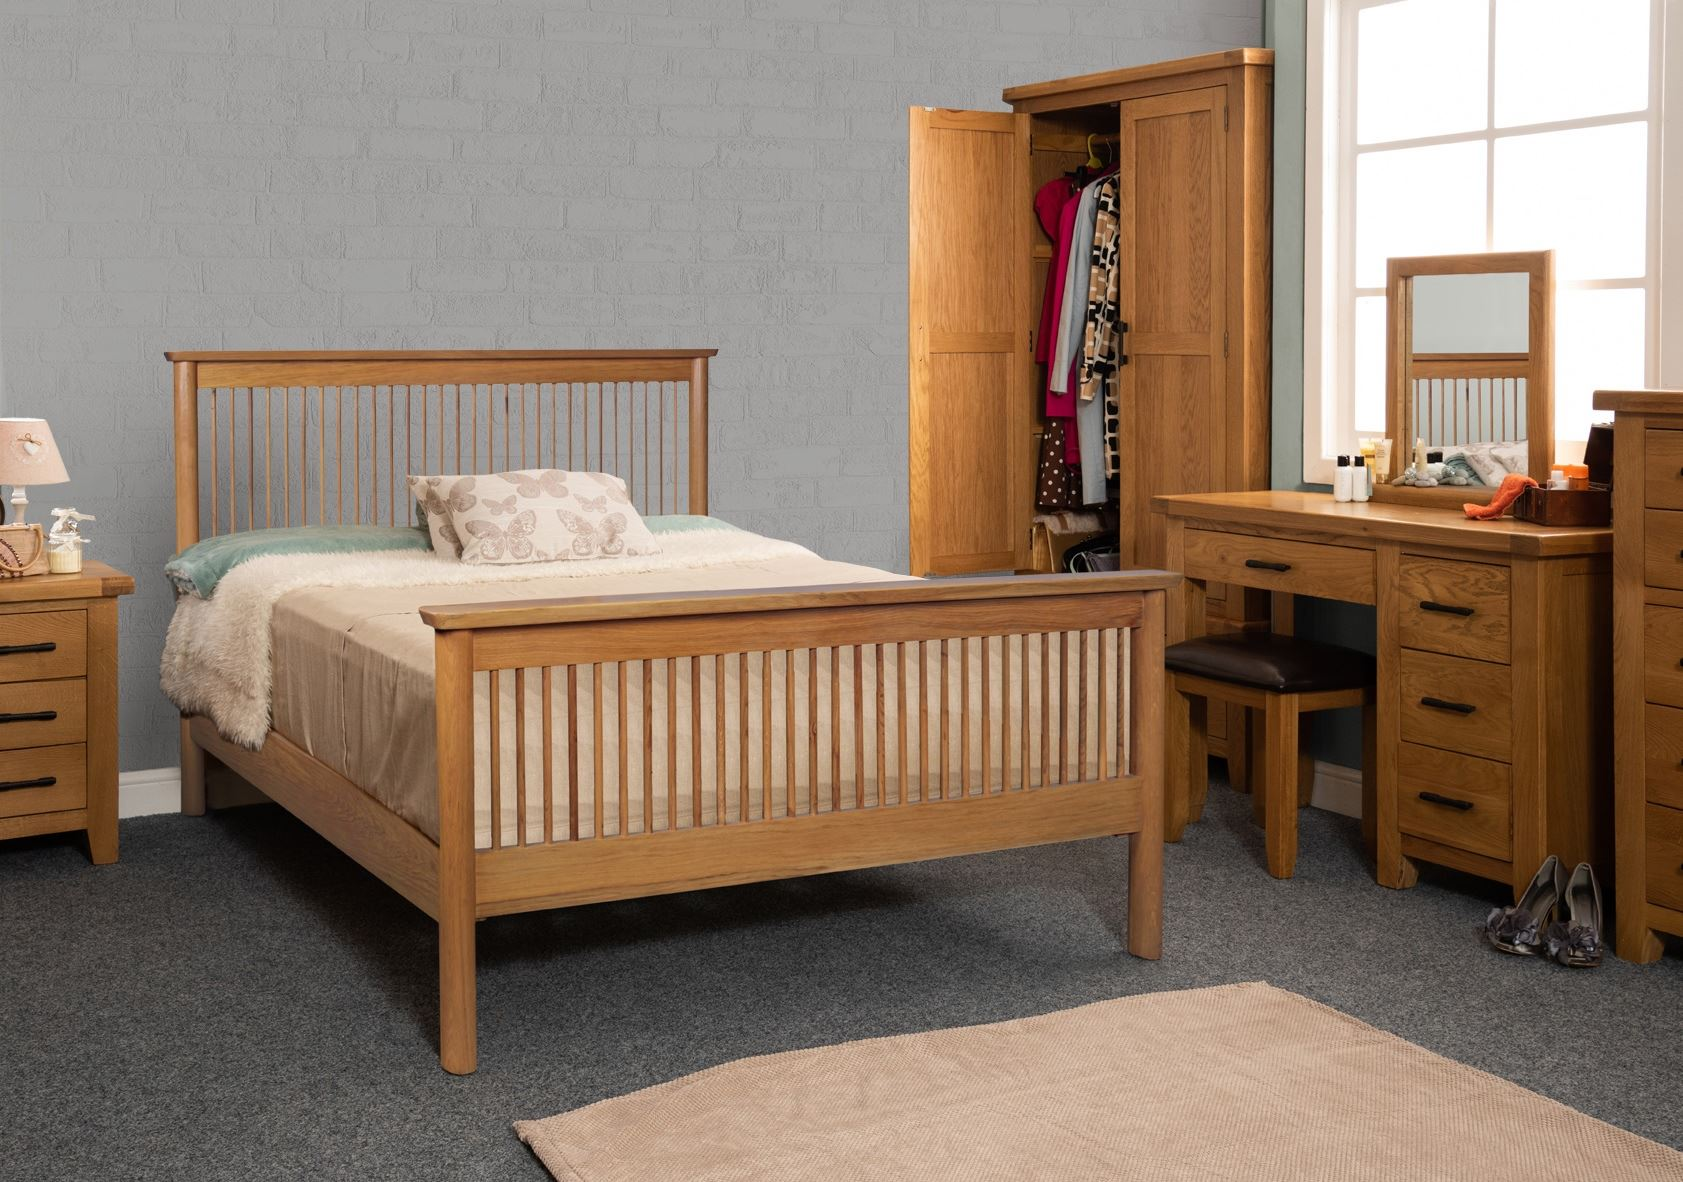 Sweet Dreams Jacob Solid Oak Wood Bed Frame 4FT6 135cm Double Pine Wooden